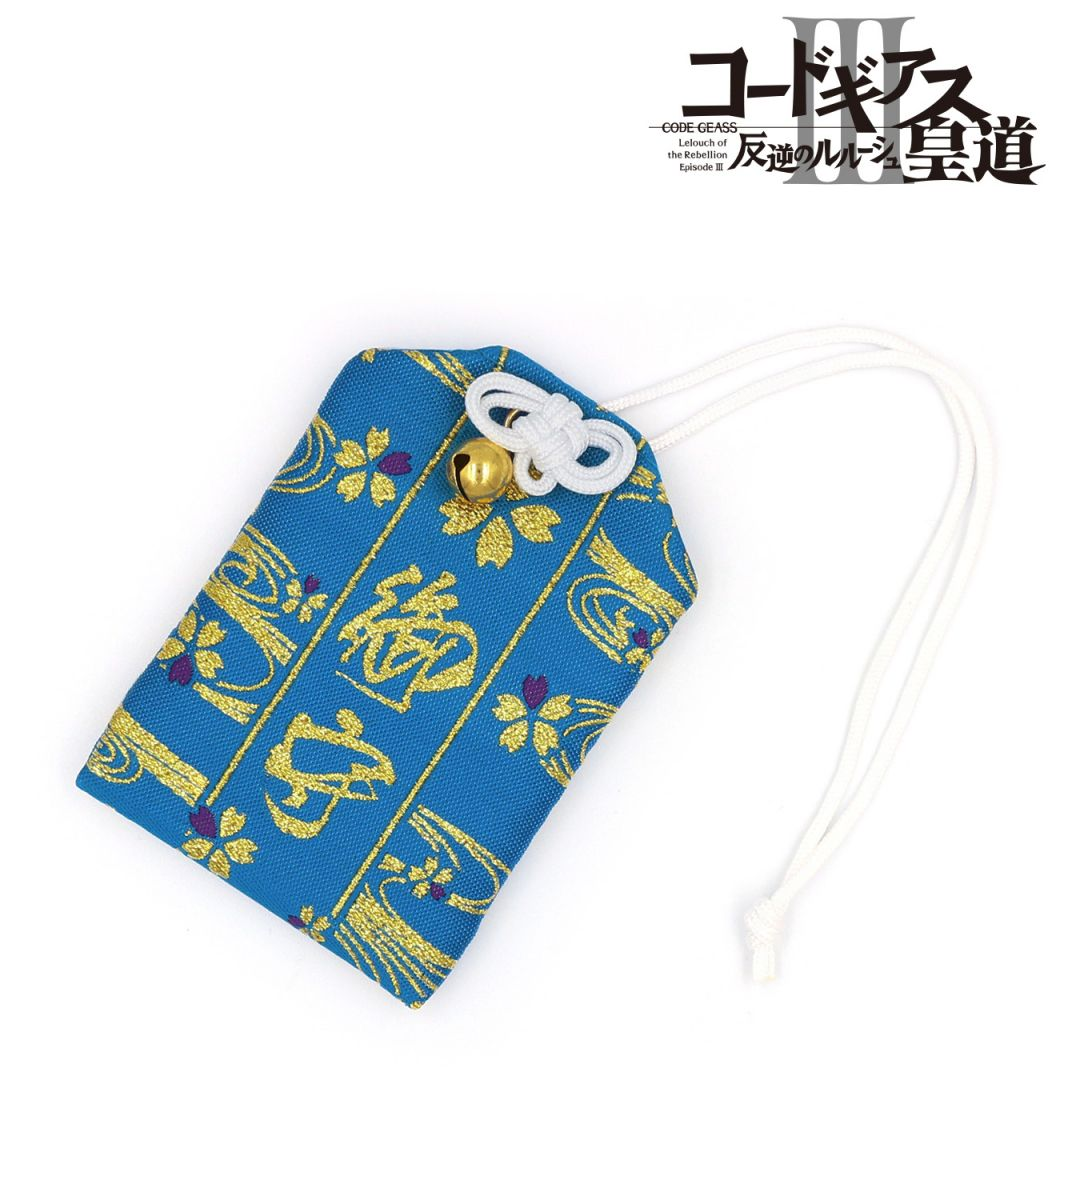 Lucky Charm   Anime Code Geass   Anime Merchandise Monday (5-12 August) by MANGA.TOKYO ©SUNRISE/PROJECT L-GEASS Character Design ©2006-2017 CLAMP・ST